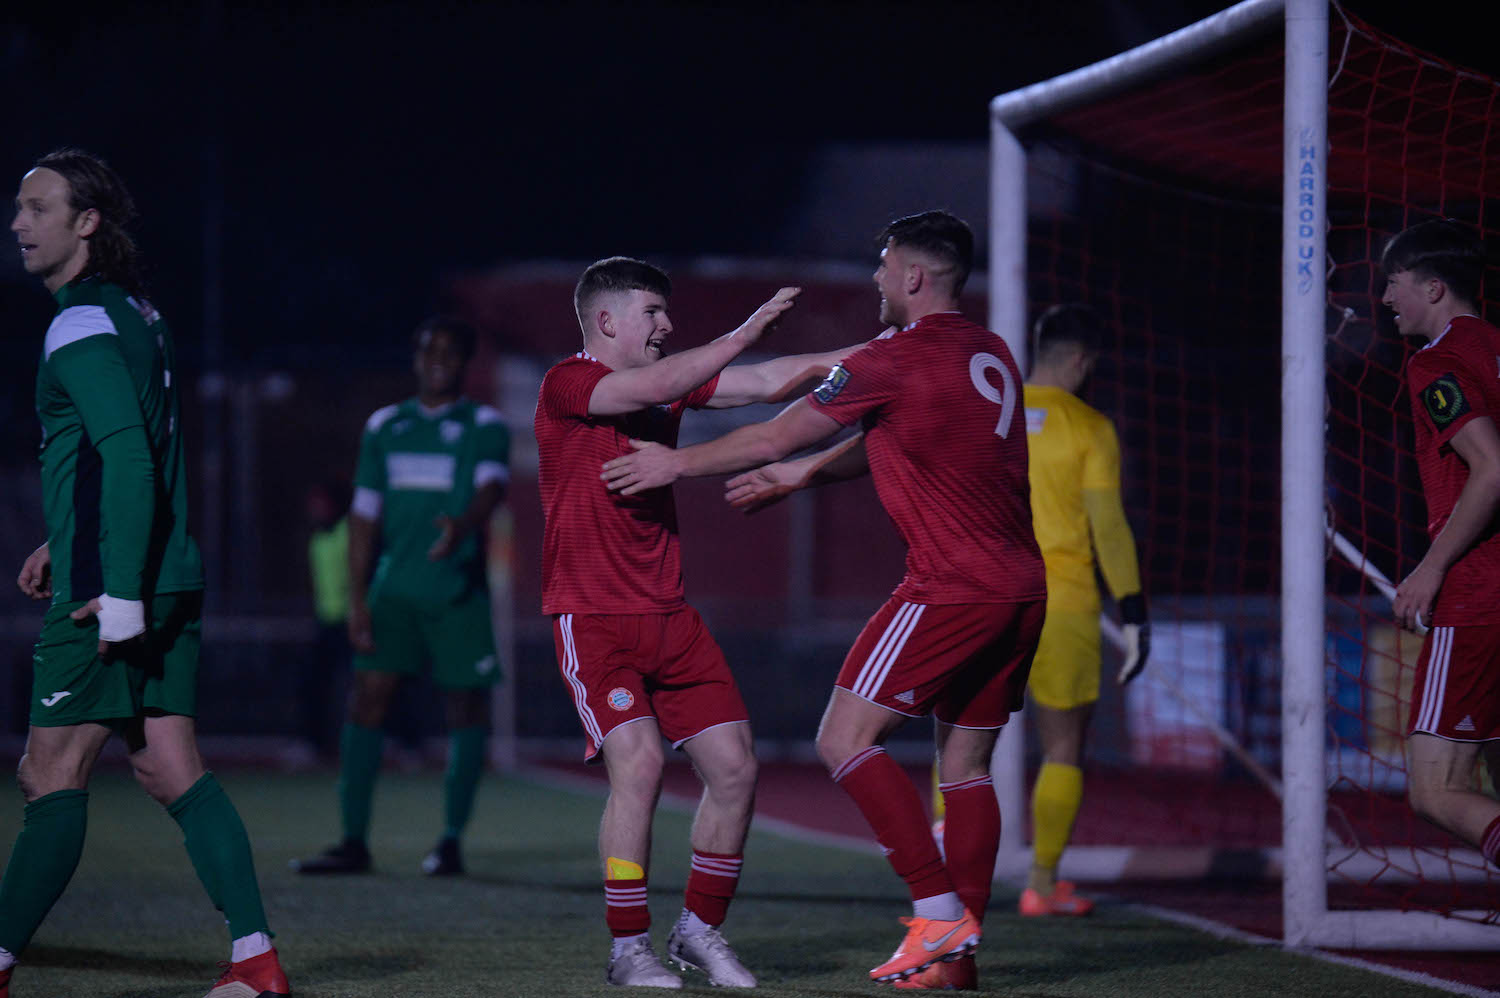 Read the full article - Dominant Worthing March On In League Cup